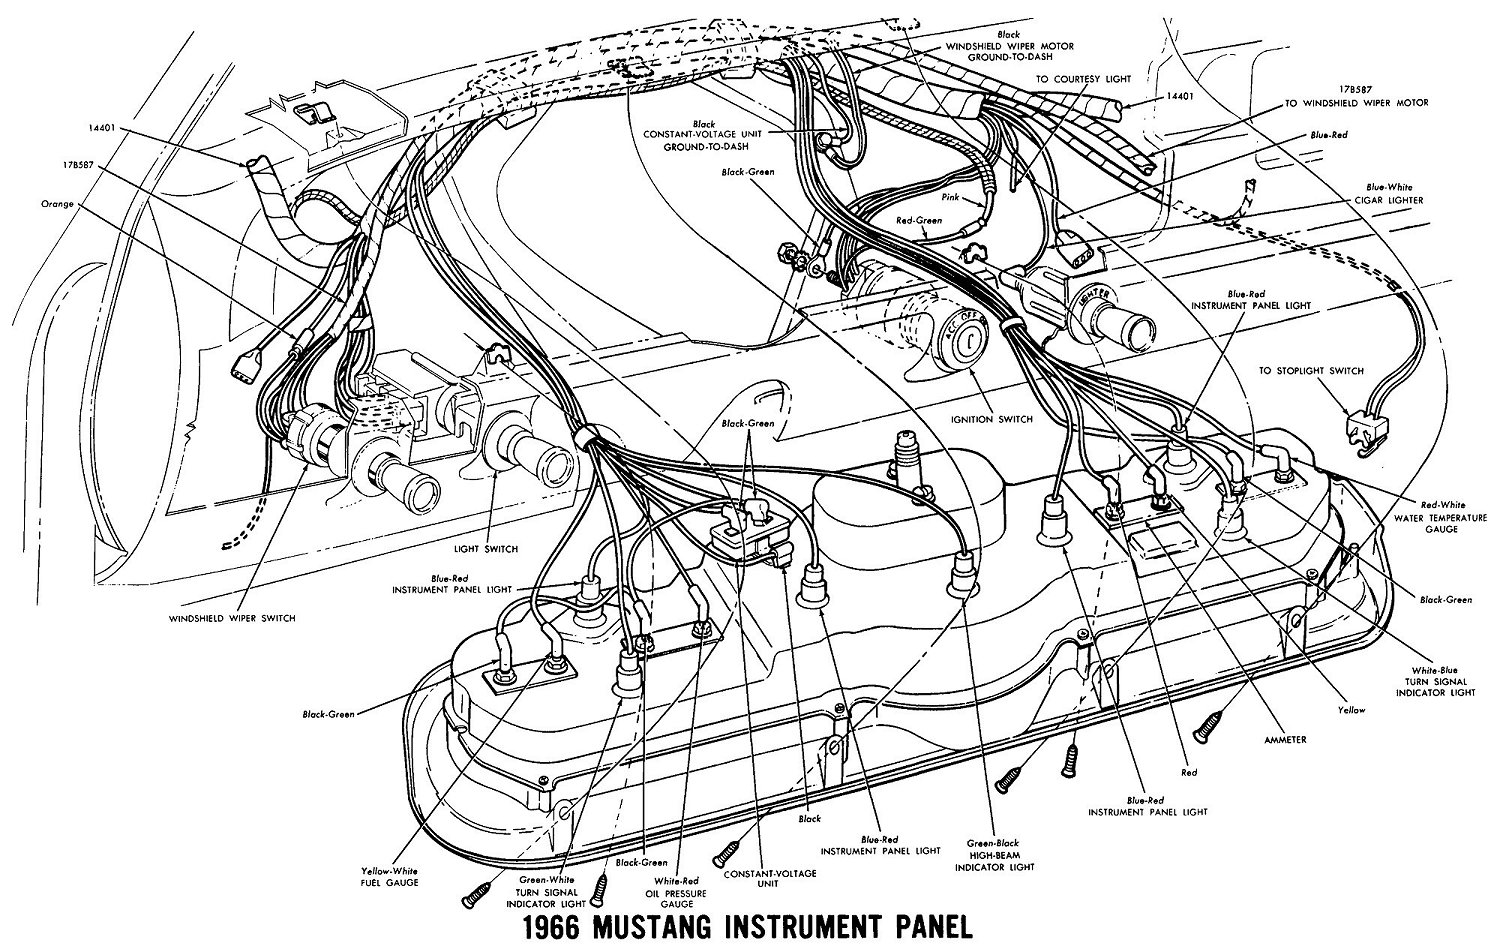 1966 Mustang Wiring Diagrams on vintage radio schematics